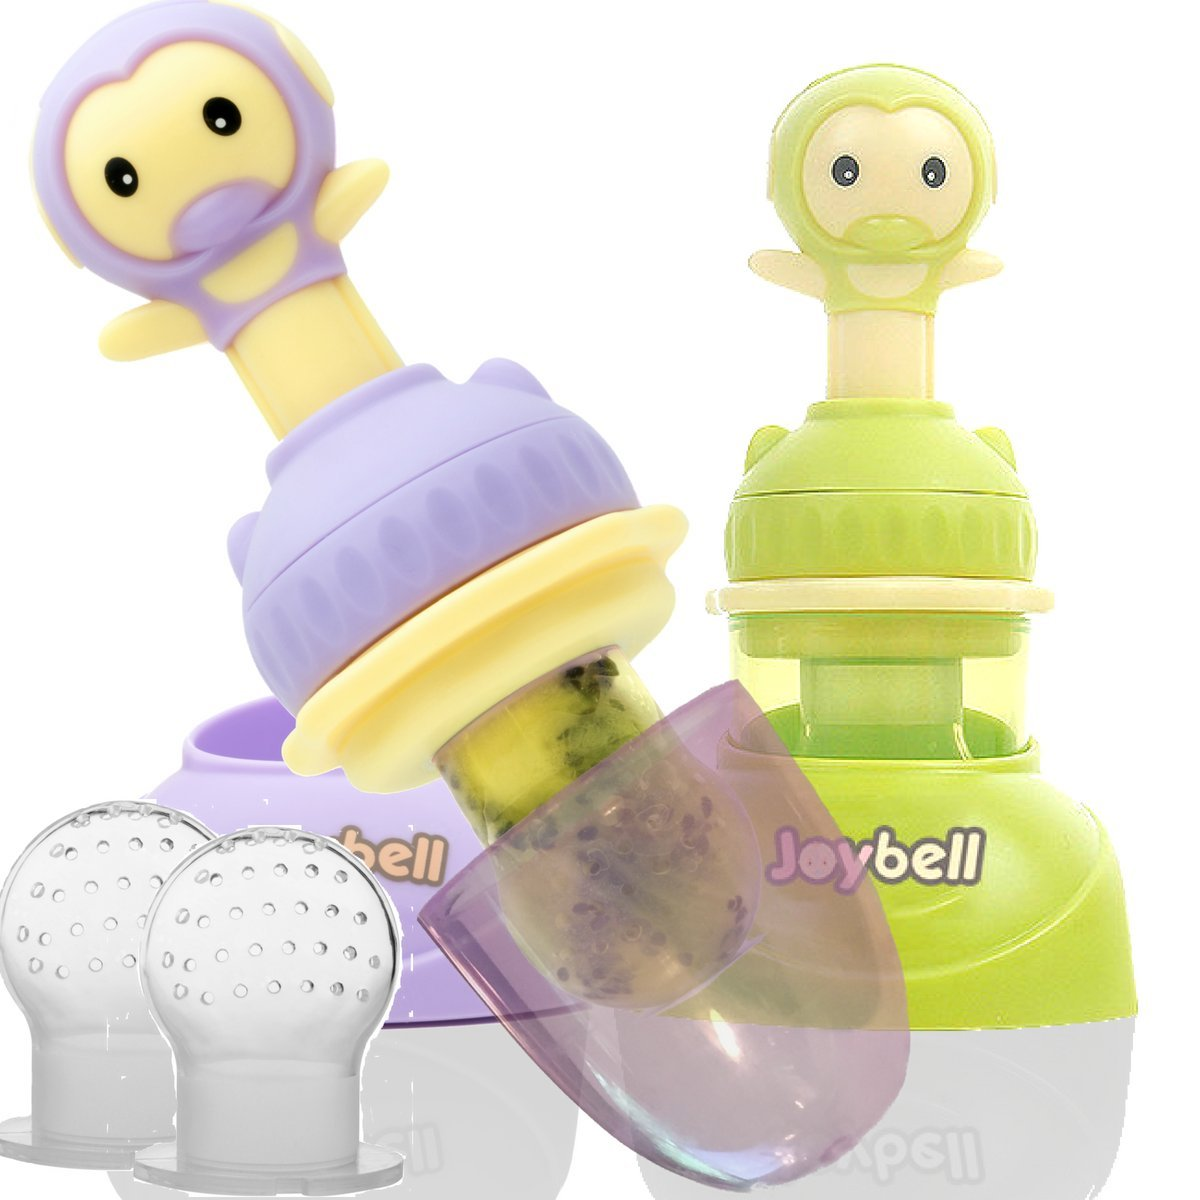 2 Easy Hold Fruit Feeder Pacifiers with Stands | Feeding Toy | Stand, Dust Cover, Medium and Large Silicone Pouches | Plus eBook on Starting Baby on Solid Food | Purple & Green 2 Pack